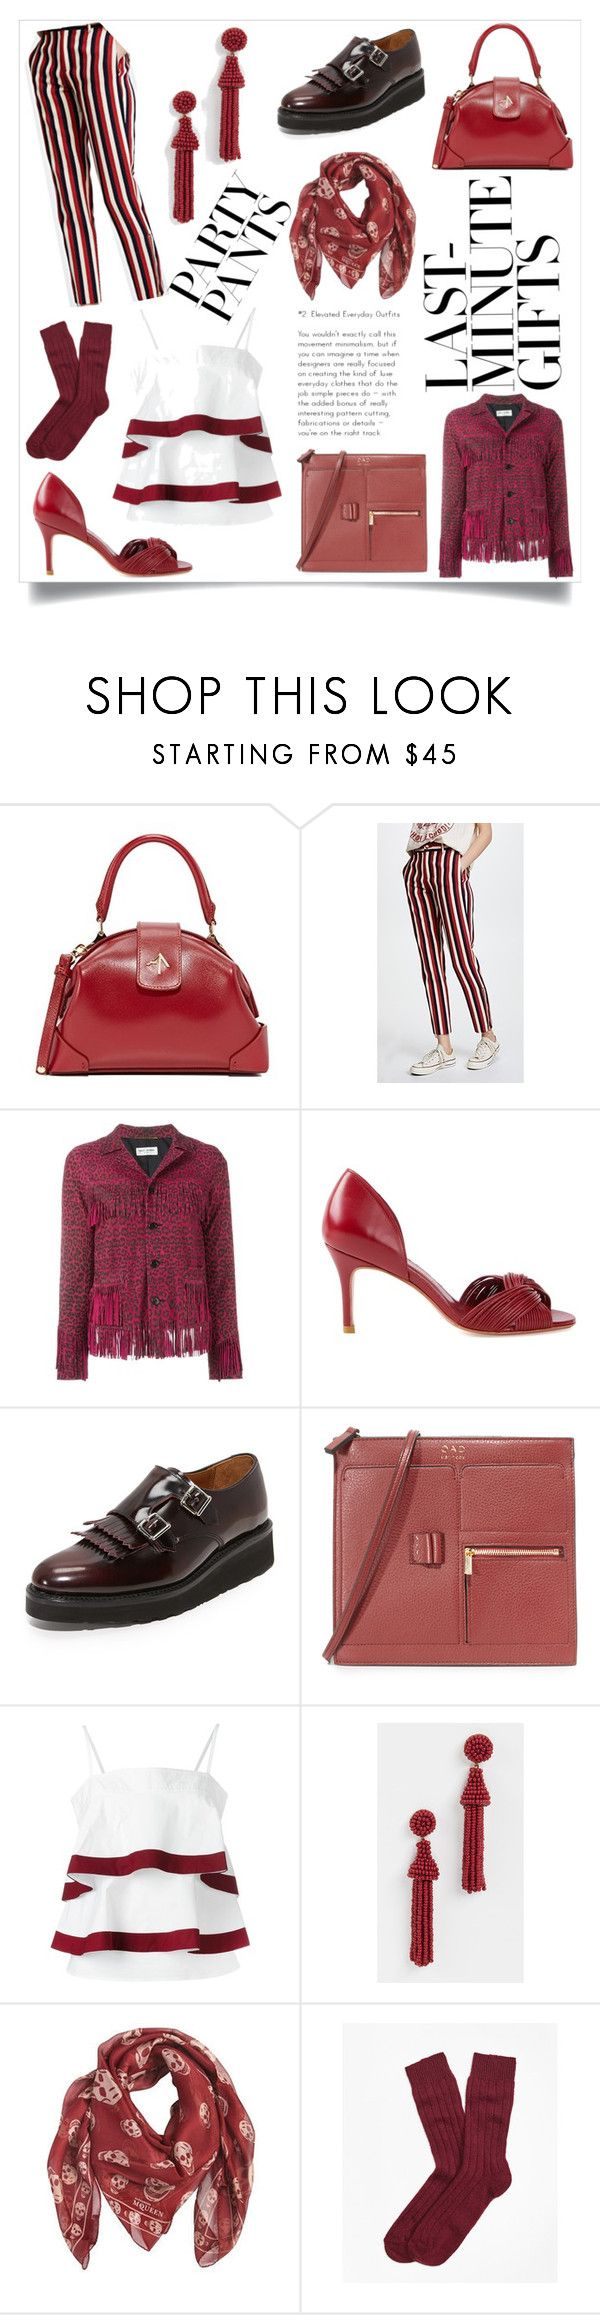 """""""Modern and beautiful"""" by emmamegan-5678 ❤ liked on Polyvore featuring MANU Atelier, Maggie Marilyn, Yves Saint Laurent, Sarah Chofakian, Grenson, OAD New York, Tory Burch, Deepa Gurnani, Alexander McQueen and Brooks Brothers"""